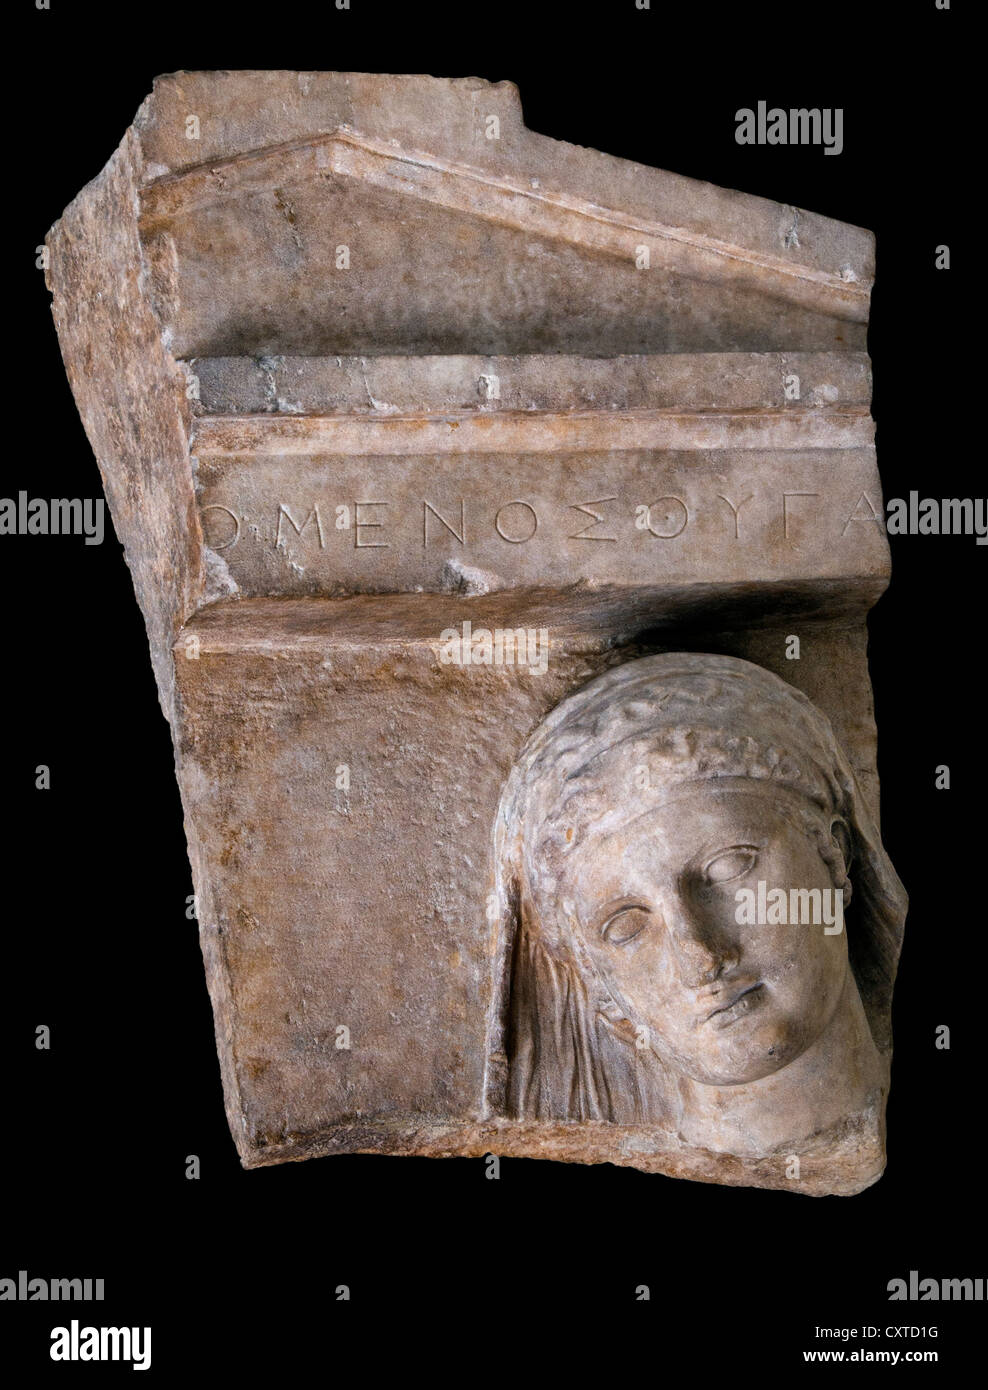 Fragment of a marble grave stele of a woman Greek Attic 400-390 BC daughter of Omenes - Stock Image